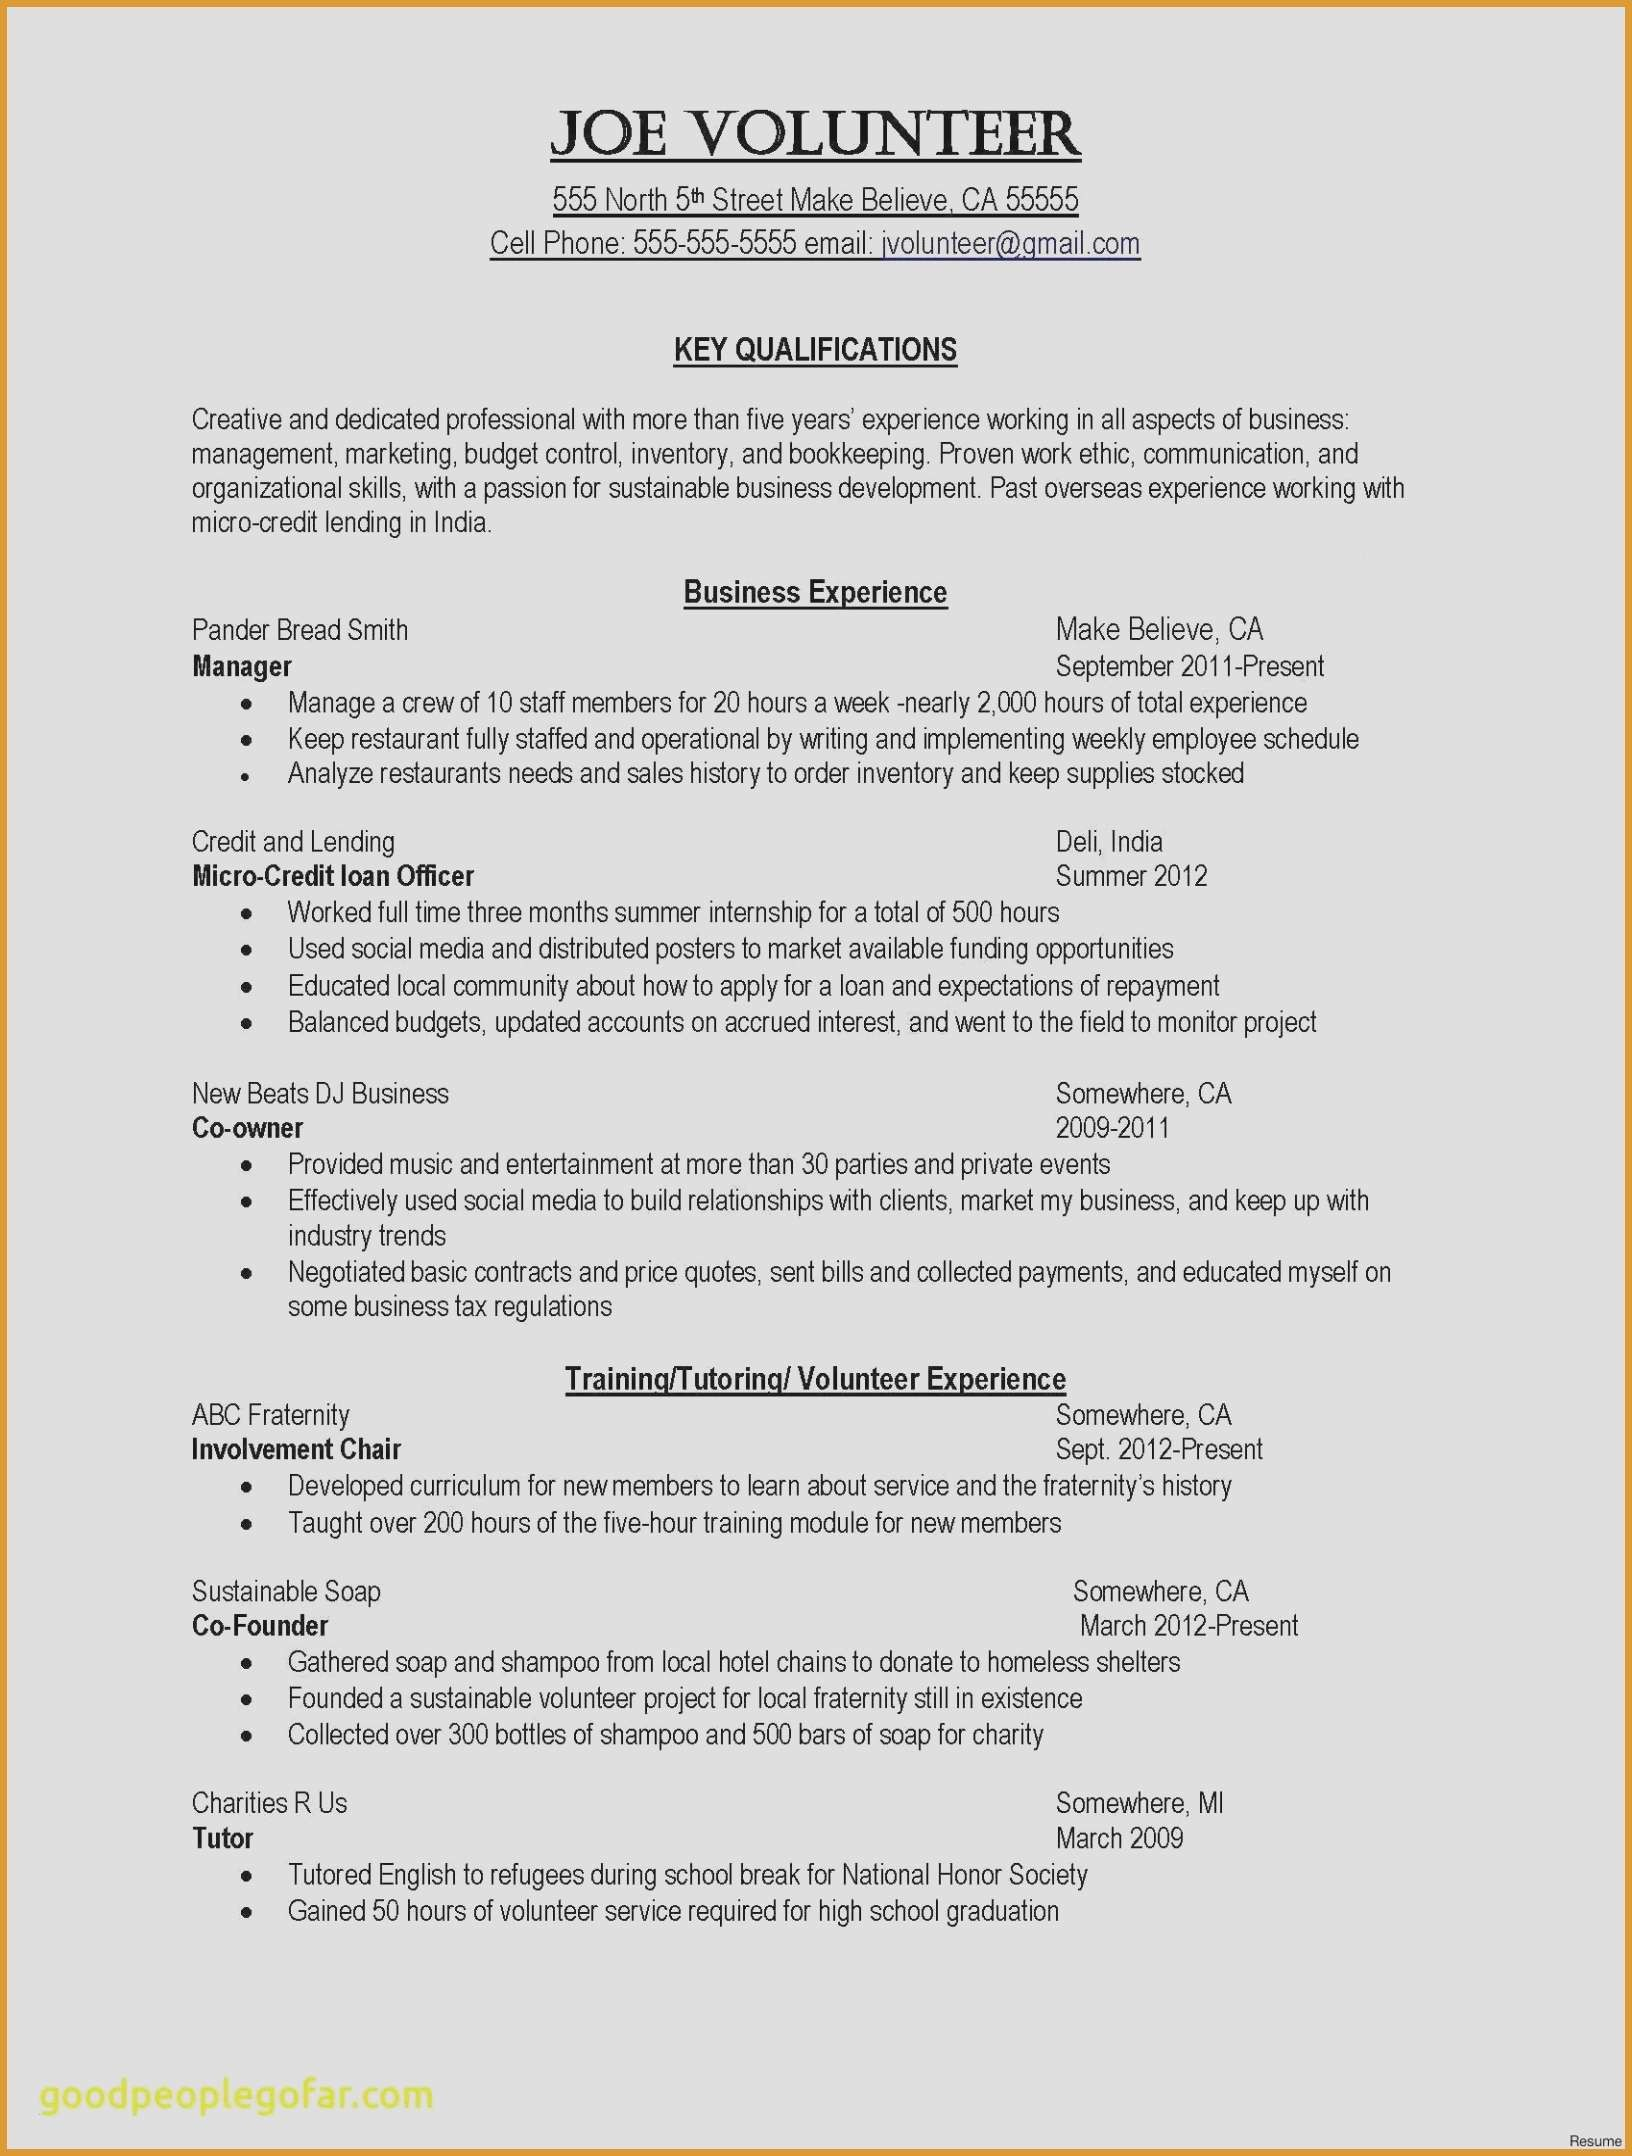 College Scholarship Resume - College Scholarship Resume